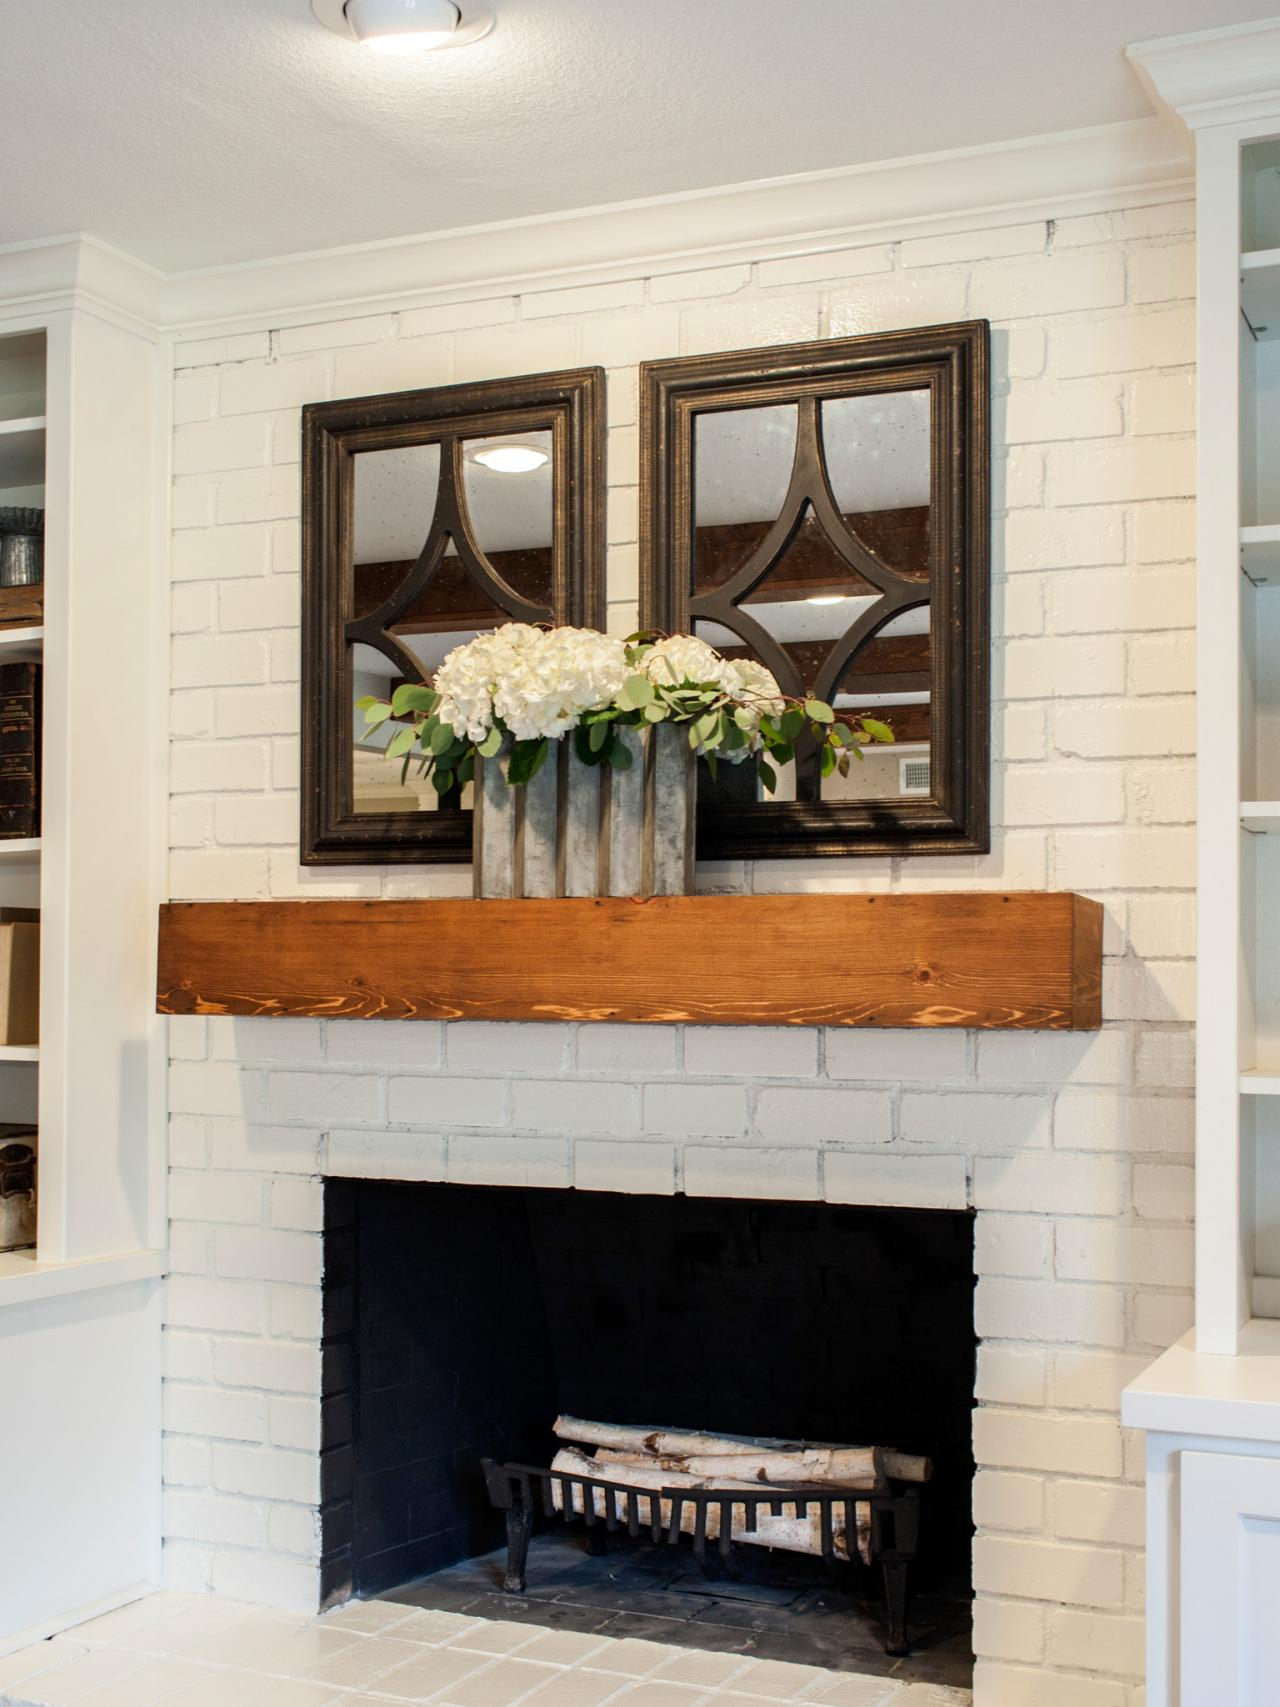 15 gorgeous painted brick fireplaces | hgtv's decorating & design